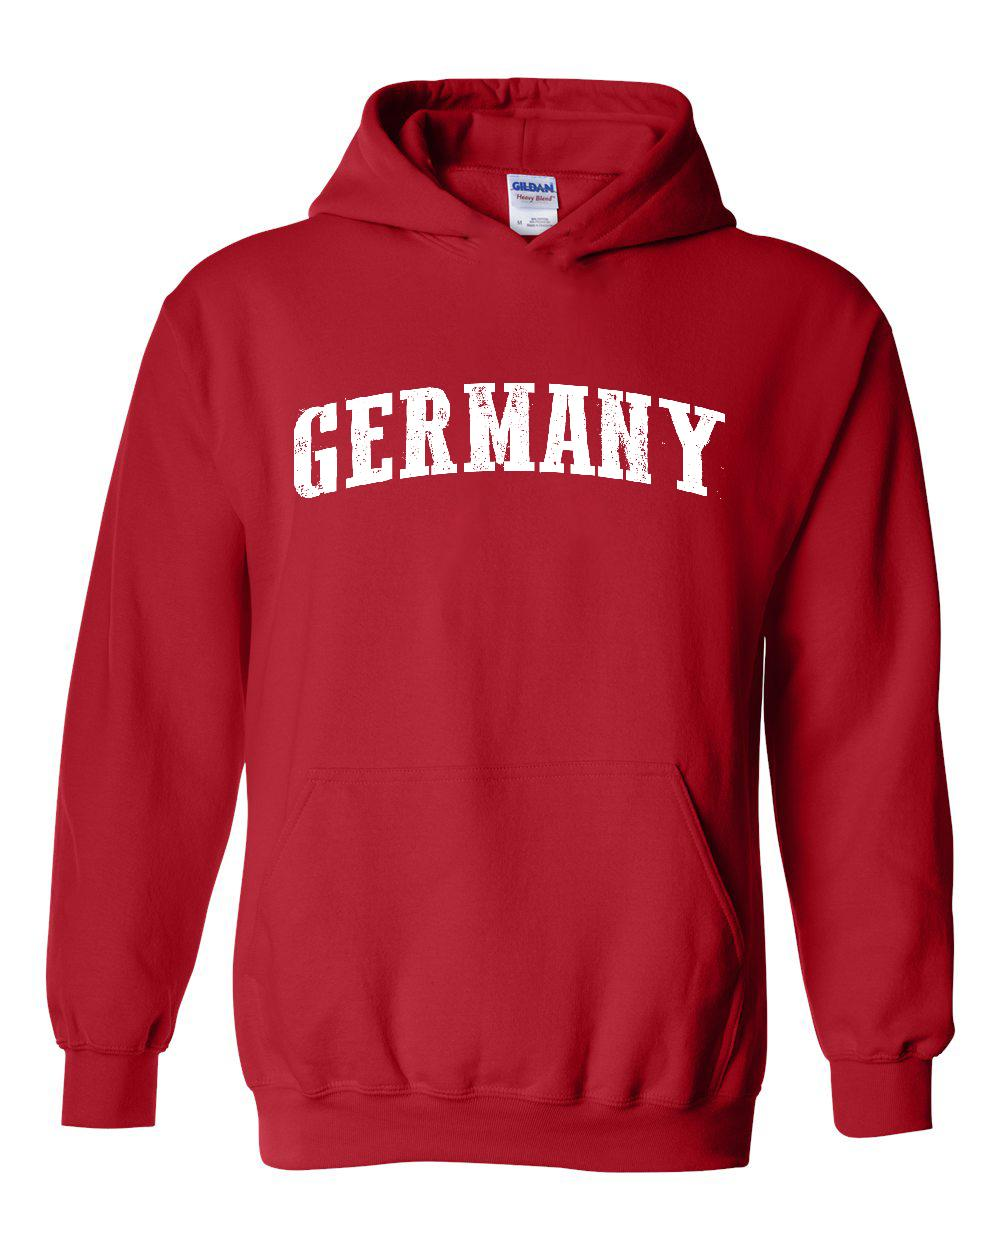 What To Do in Germany Munich Europe Travel Deals Map German Dutch Flag Unisex...